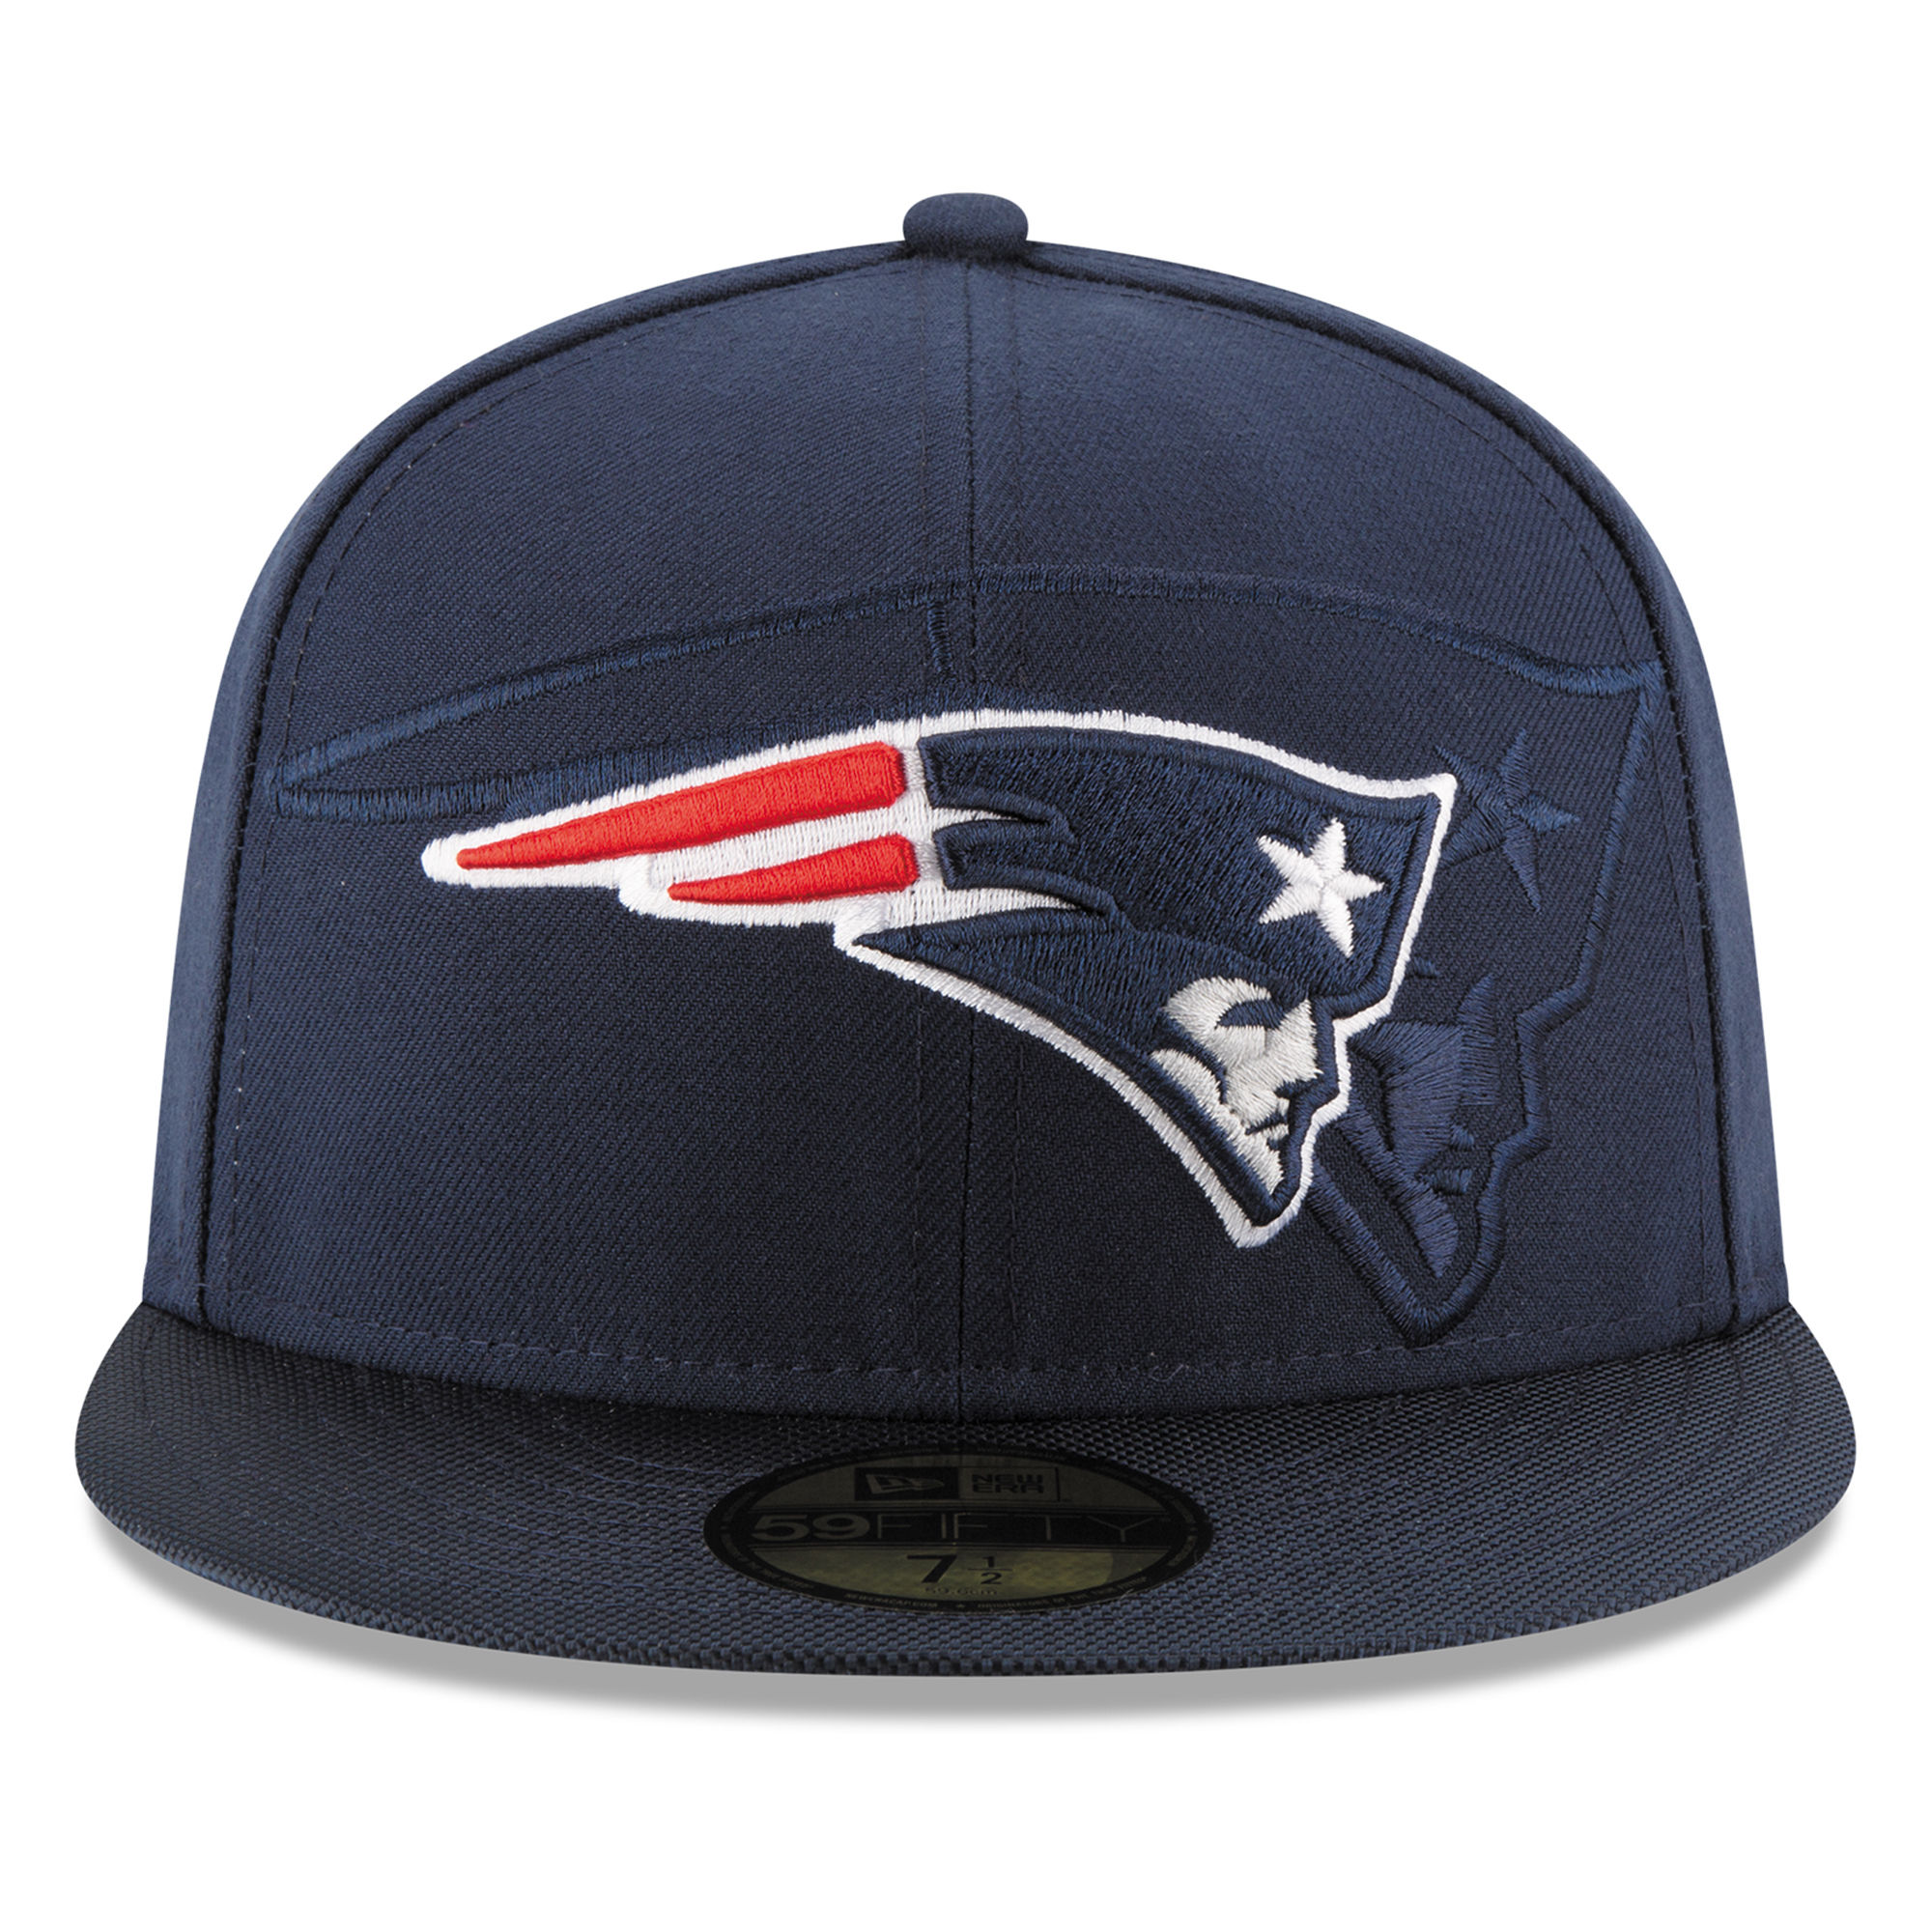 521b0045c New Era New England Patriots Navy 2016 Sideline Official 59FIFTY Fitted Hat